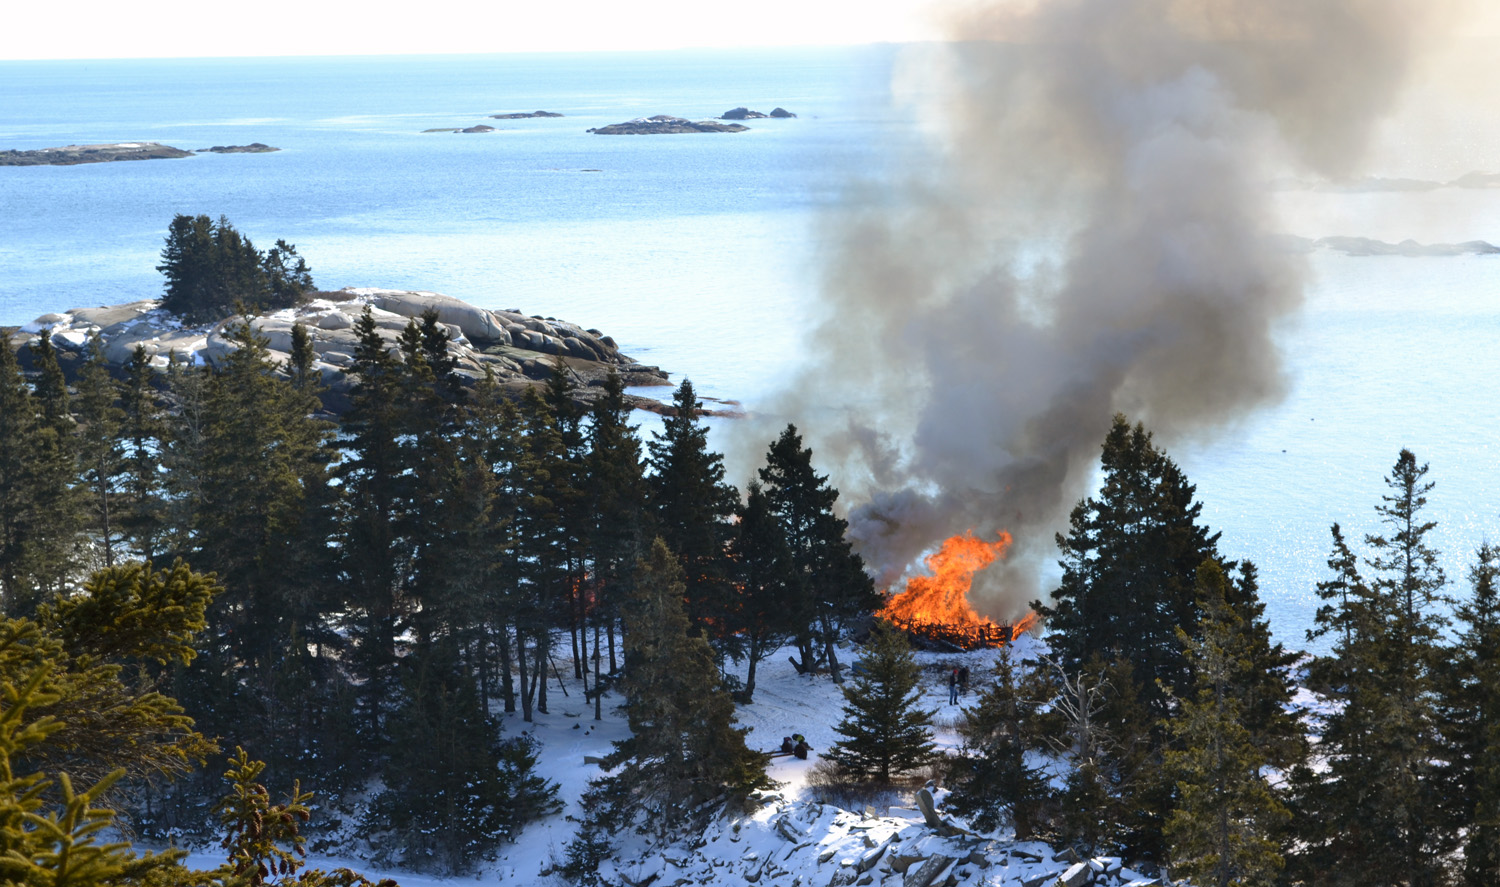 A view of the blaze from the cliffs above the quarry